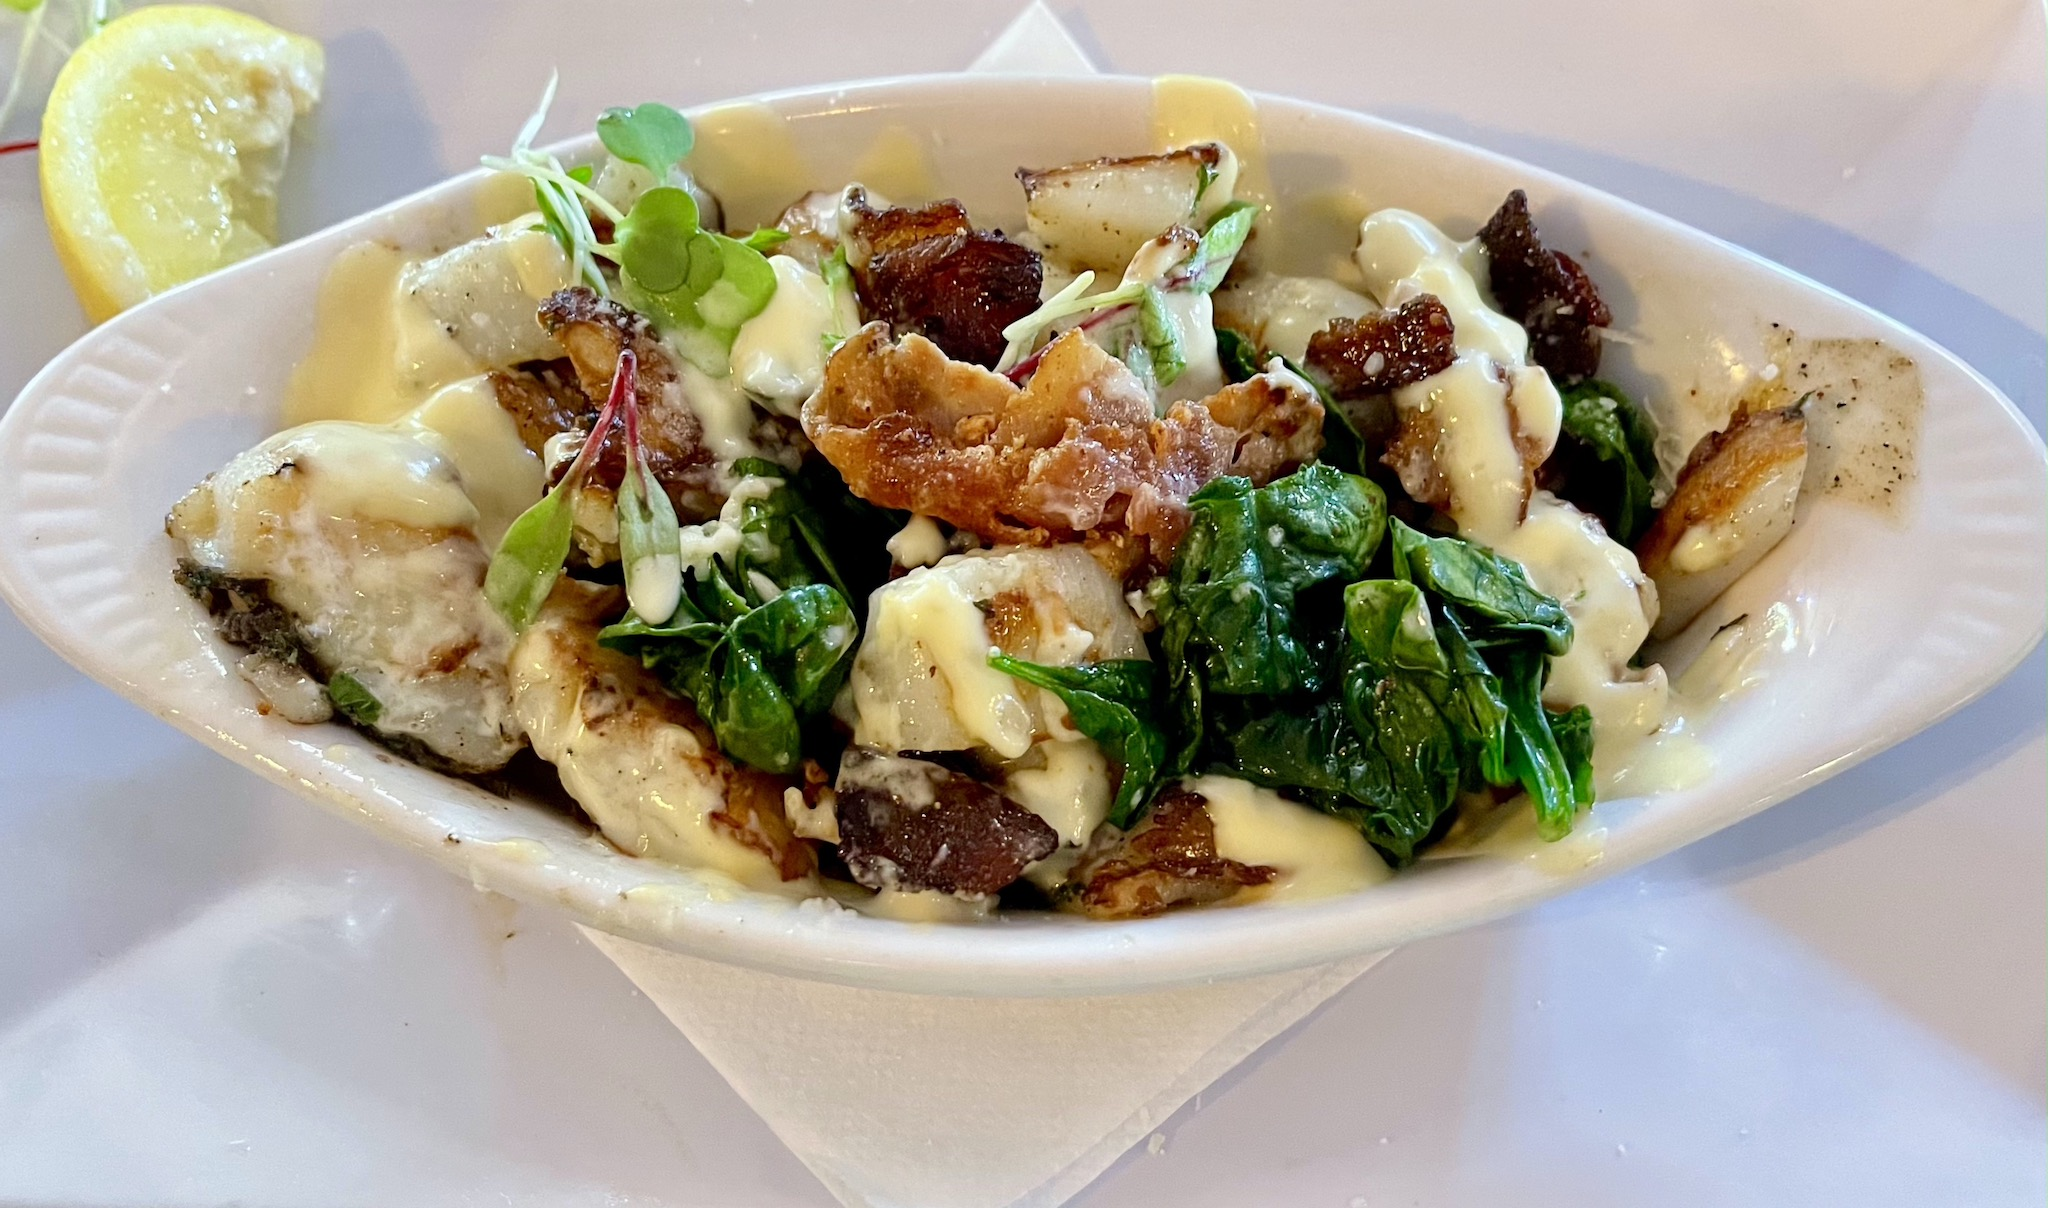 Shrimpys Scallops Rockefeller - Sea scallops sautéed in bacon over grilled spinach with hollandaise & parmesan cheese